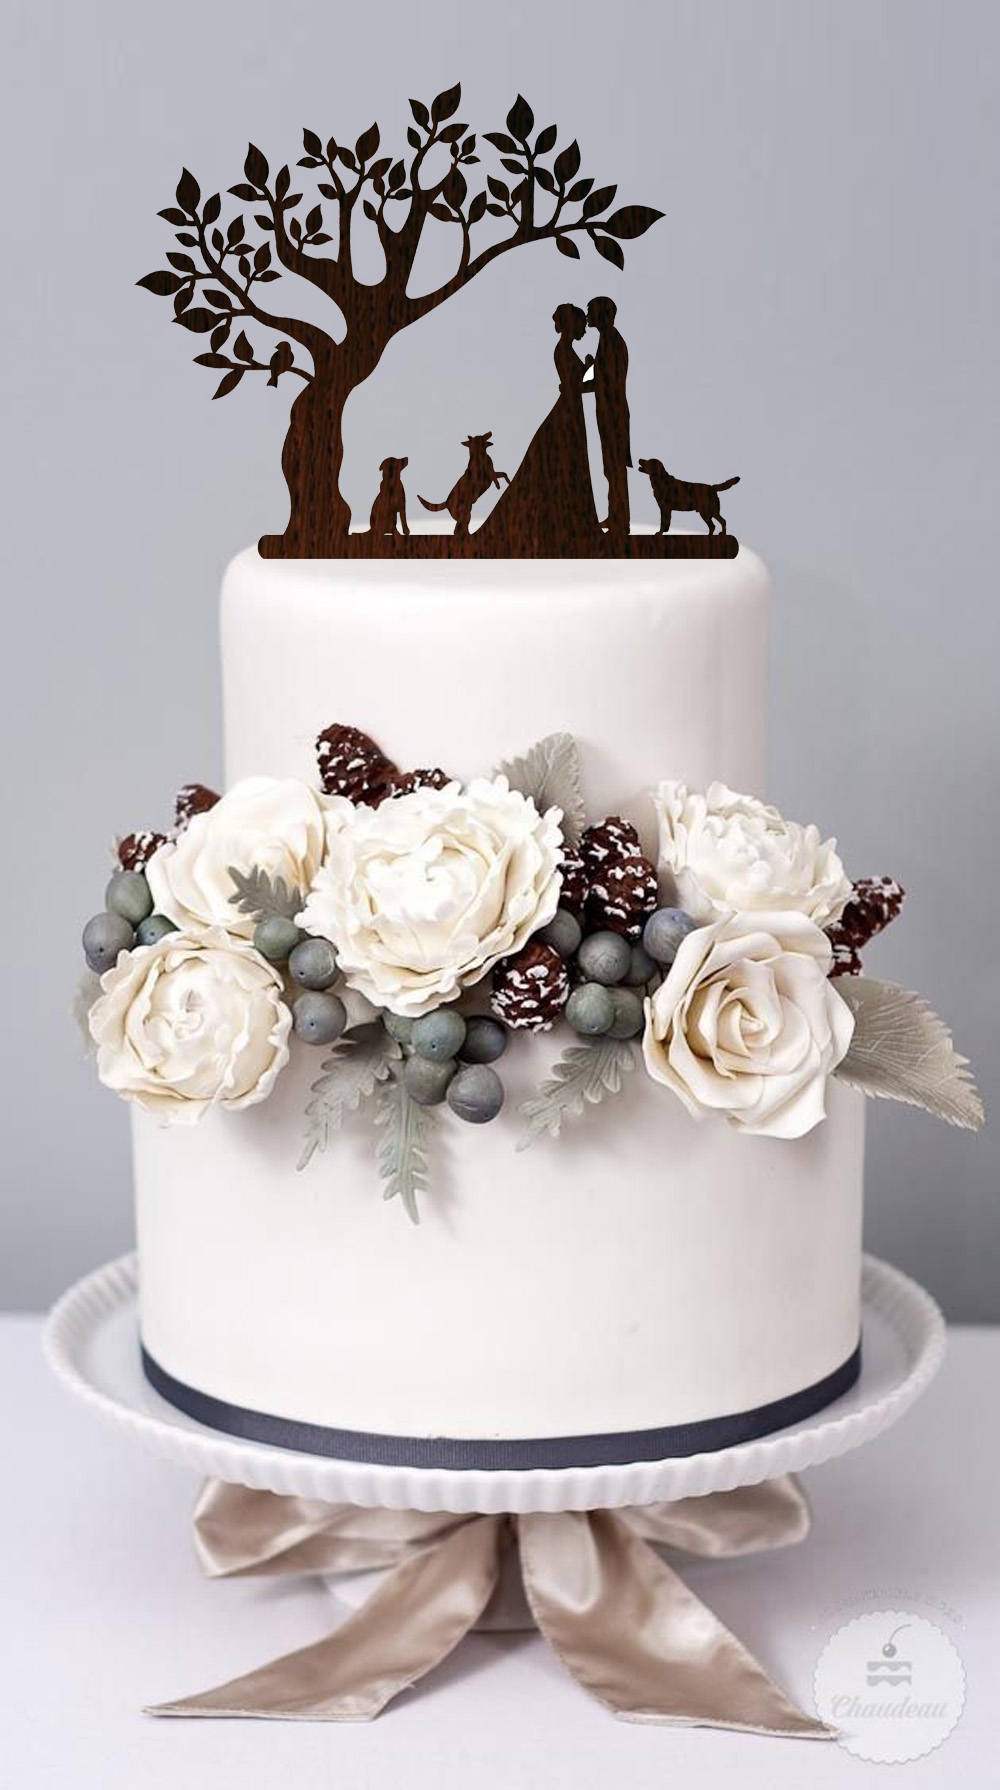 Wedding Cake Topper With Dog Couple Silhouette Cake Topper Rustic Personalized Wood Mr & Mrs